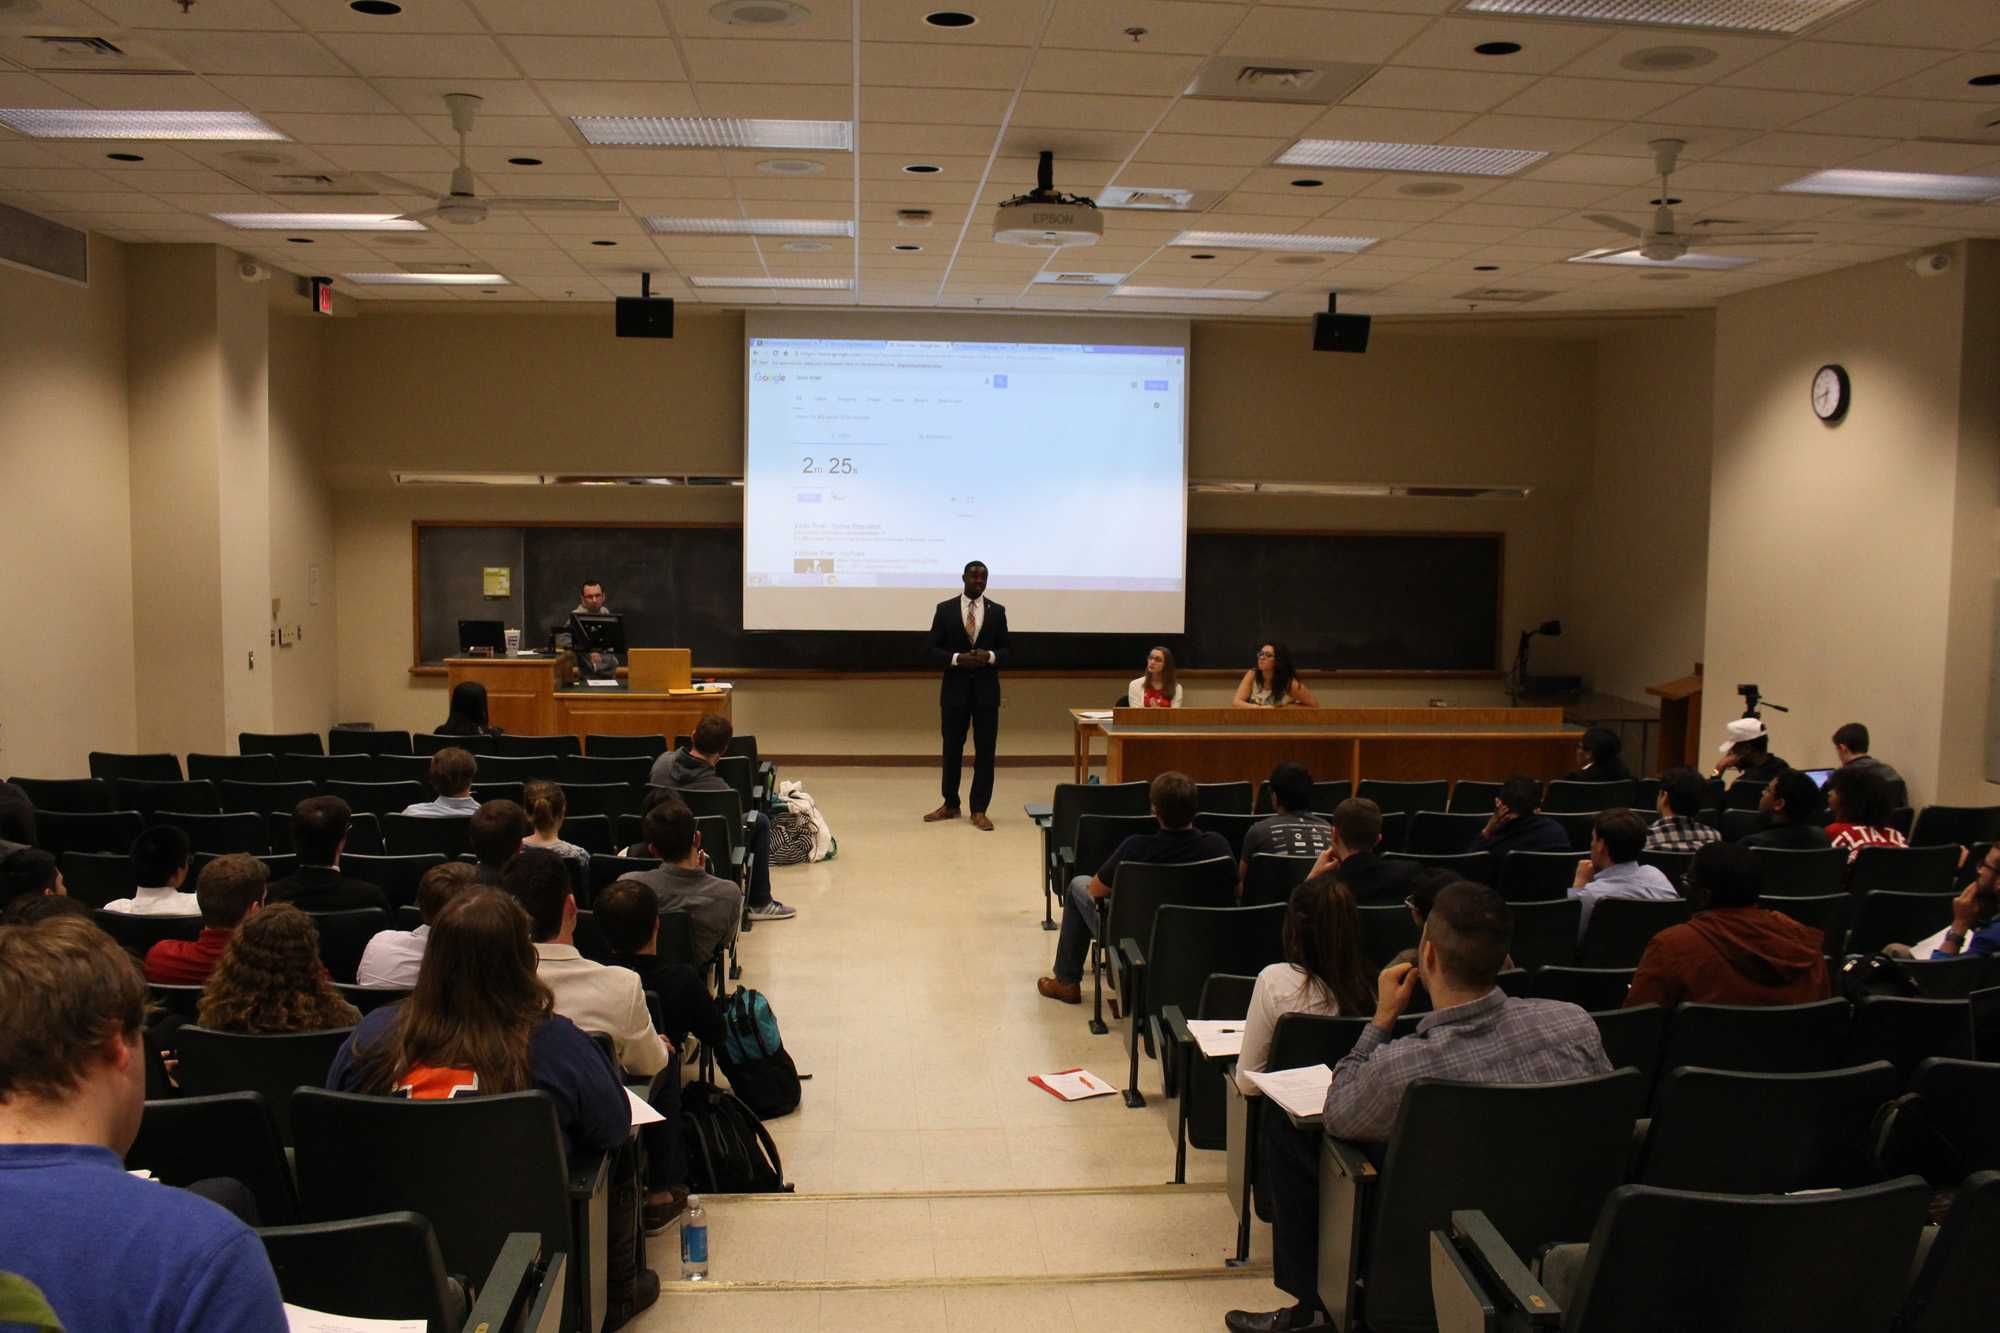 Illinois Student Senate holds elections for student president at the Psychology Building on Tuesday, Mar. 29, 2016